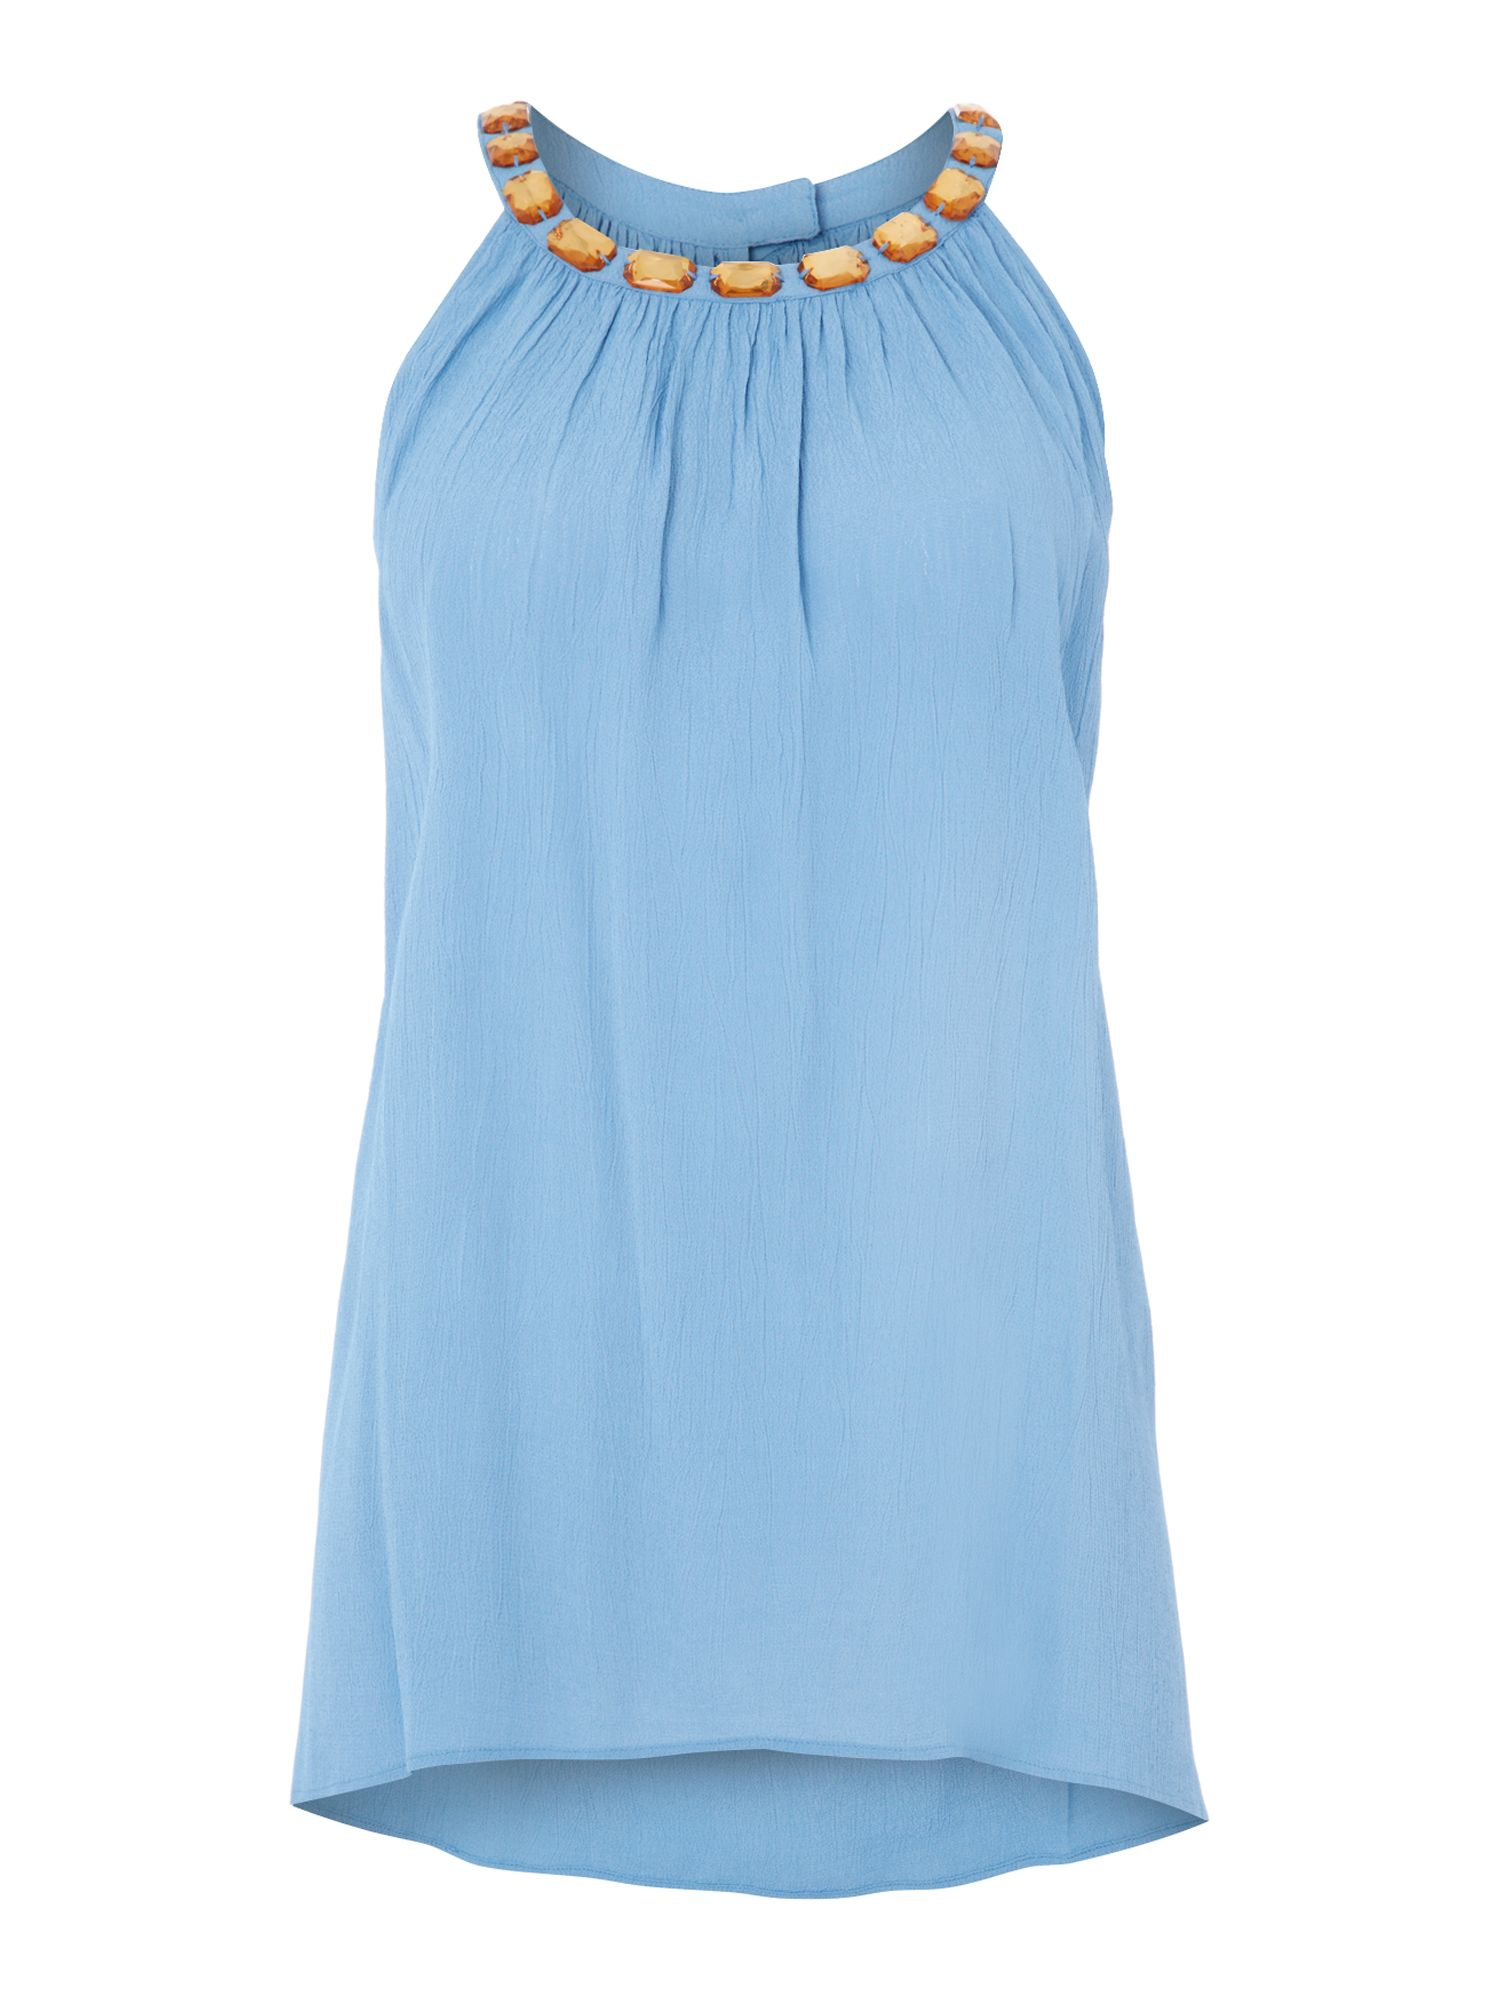 Sleeveless beaded swing top